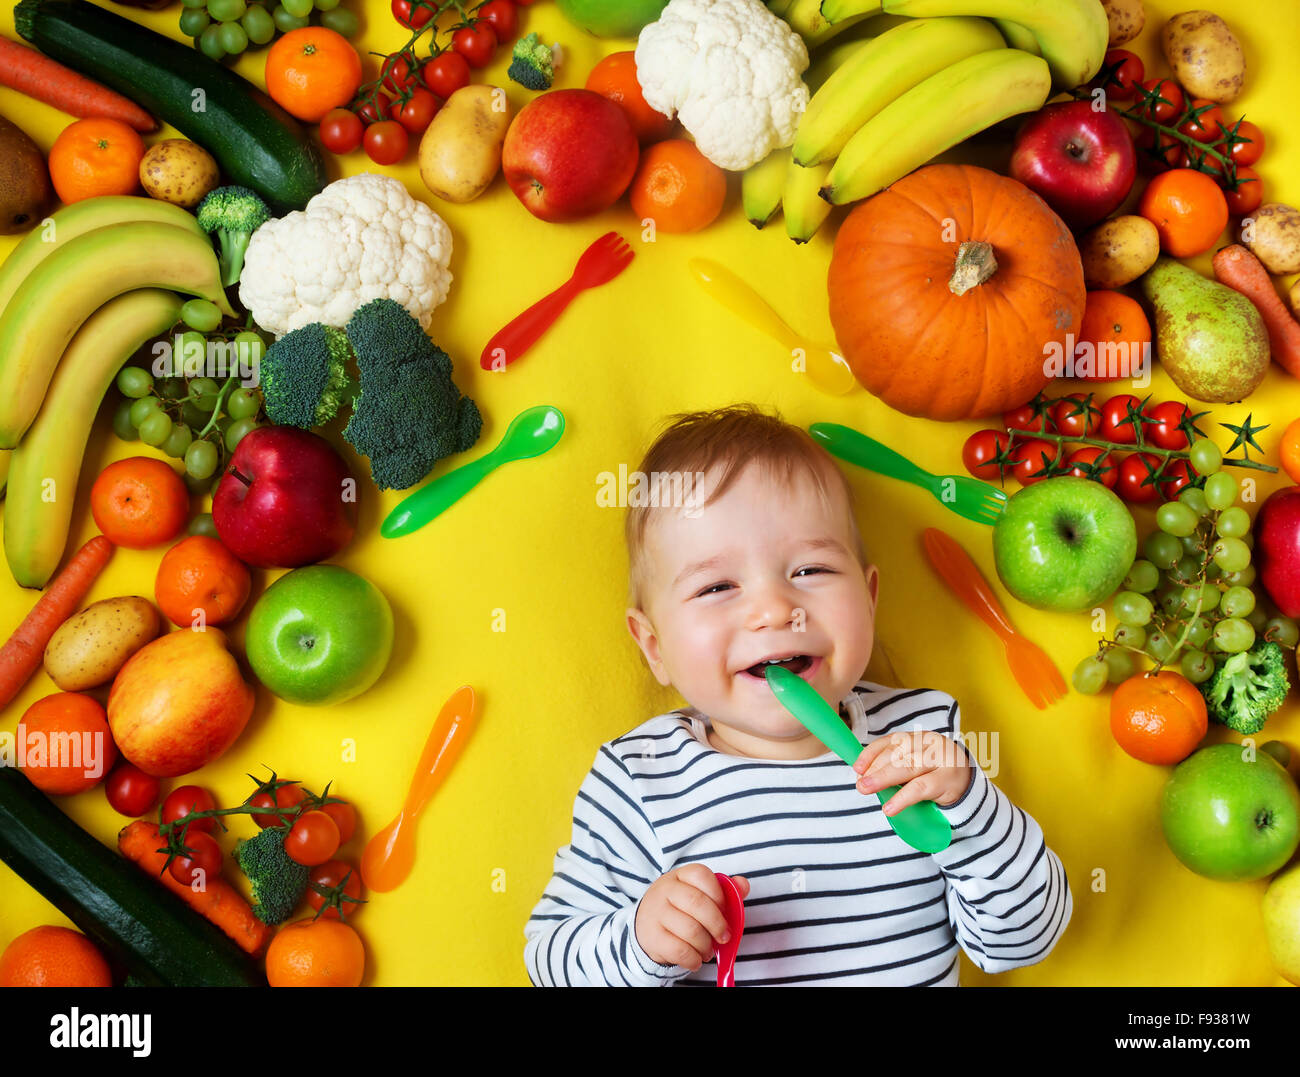 Baby surrounded with fruits and vegetables - Stock Image